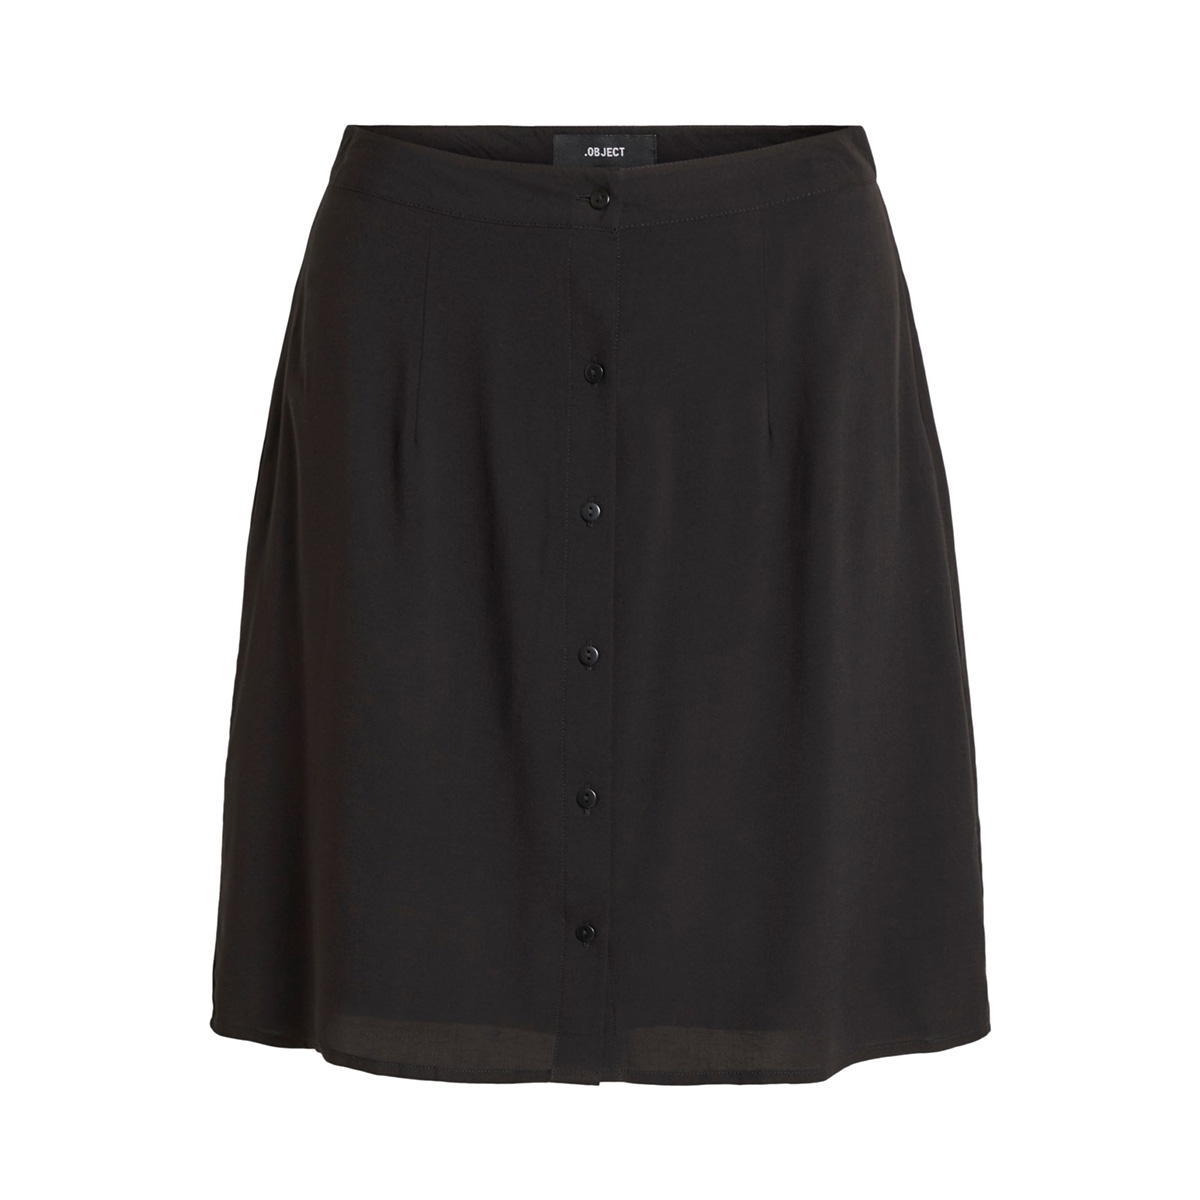 objclarissa short skirt 103 23029861 object rok black/solid